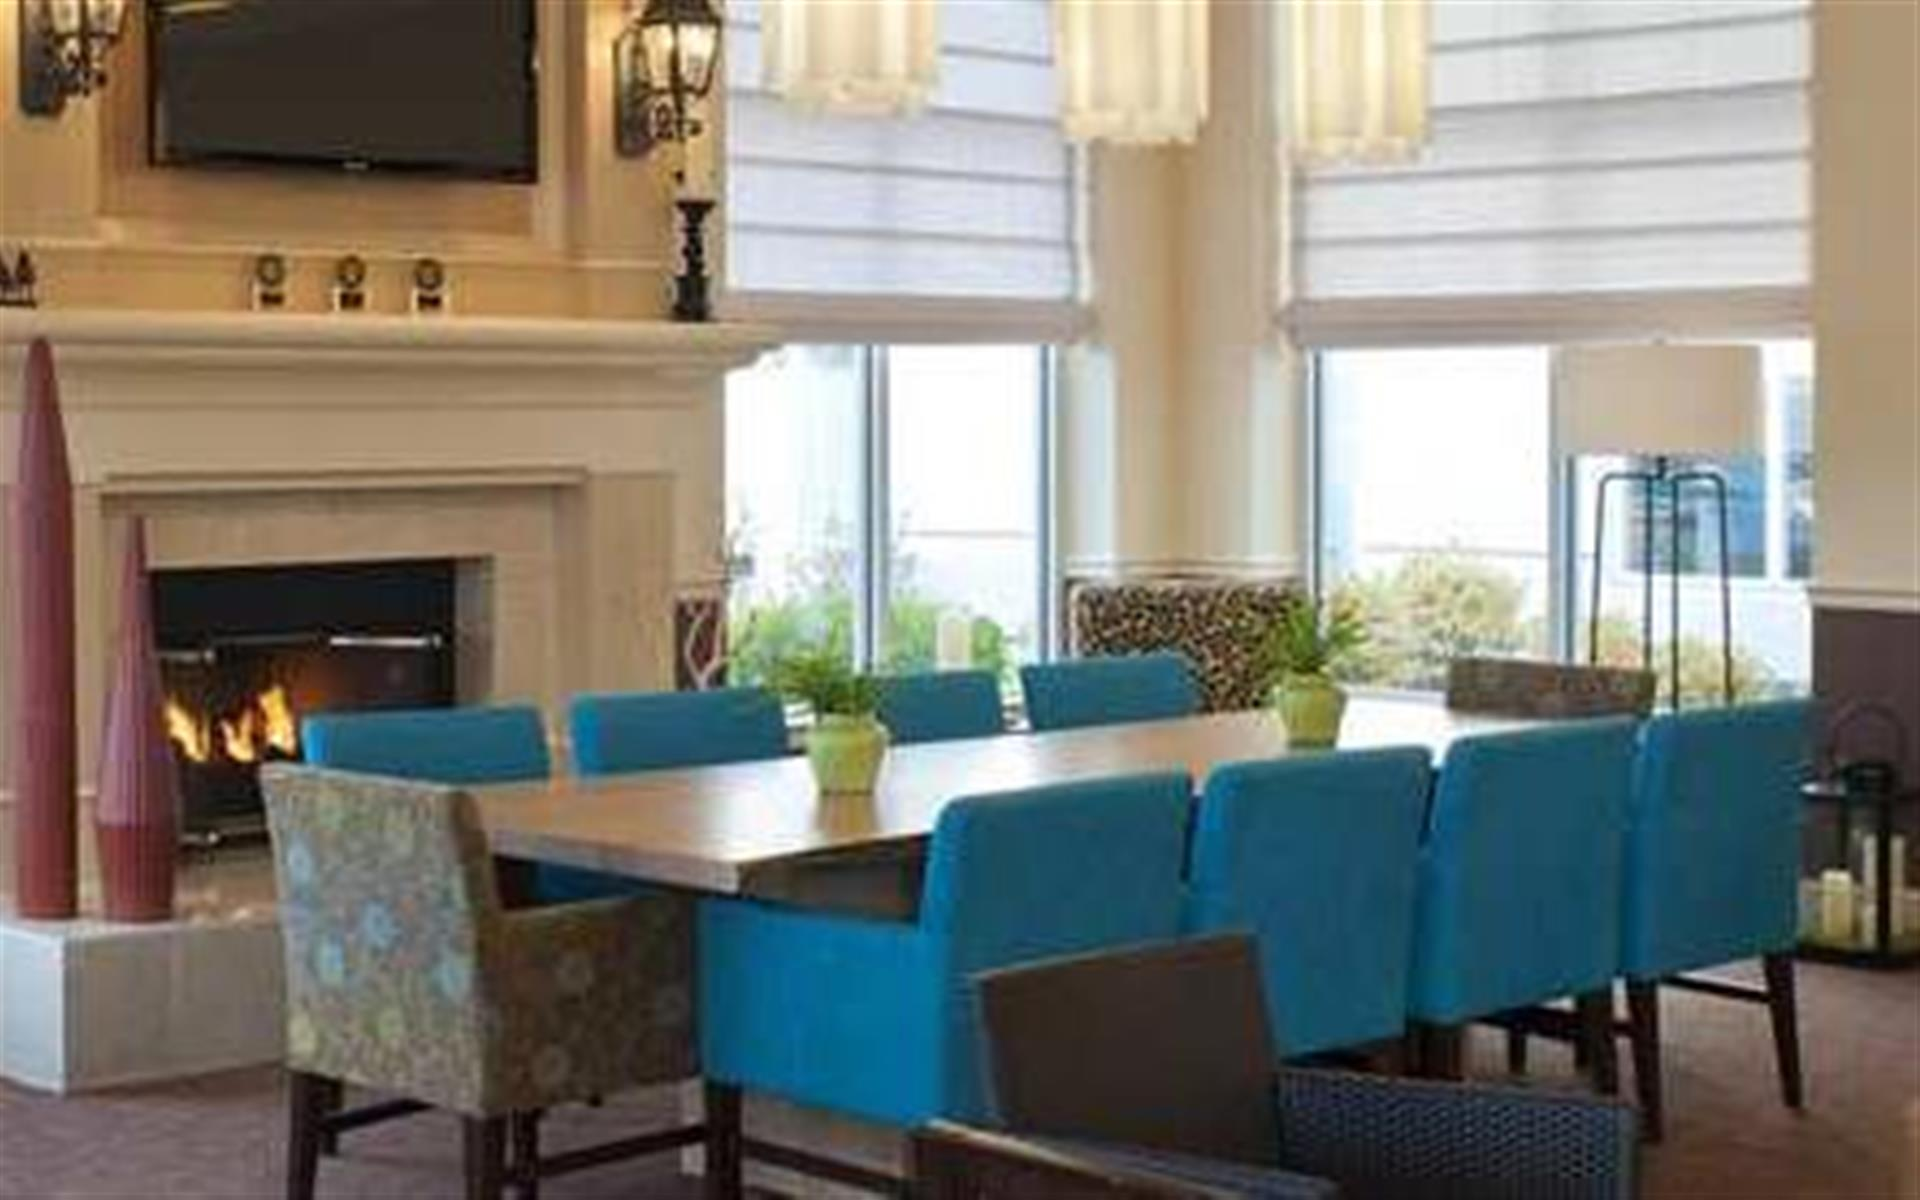 Hilton Garden Inn Minneapolis/Maple Grove - Conference Table